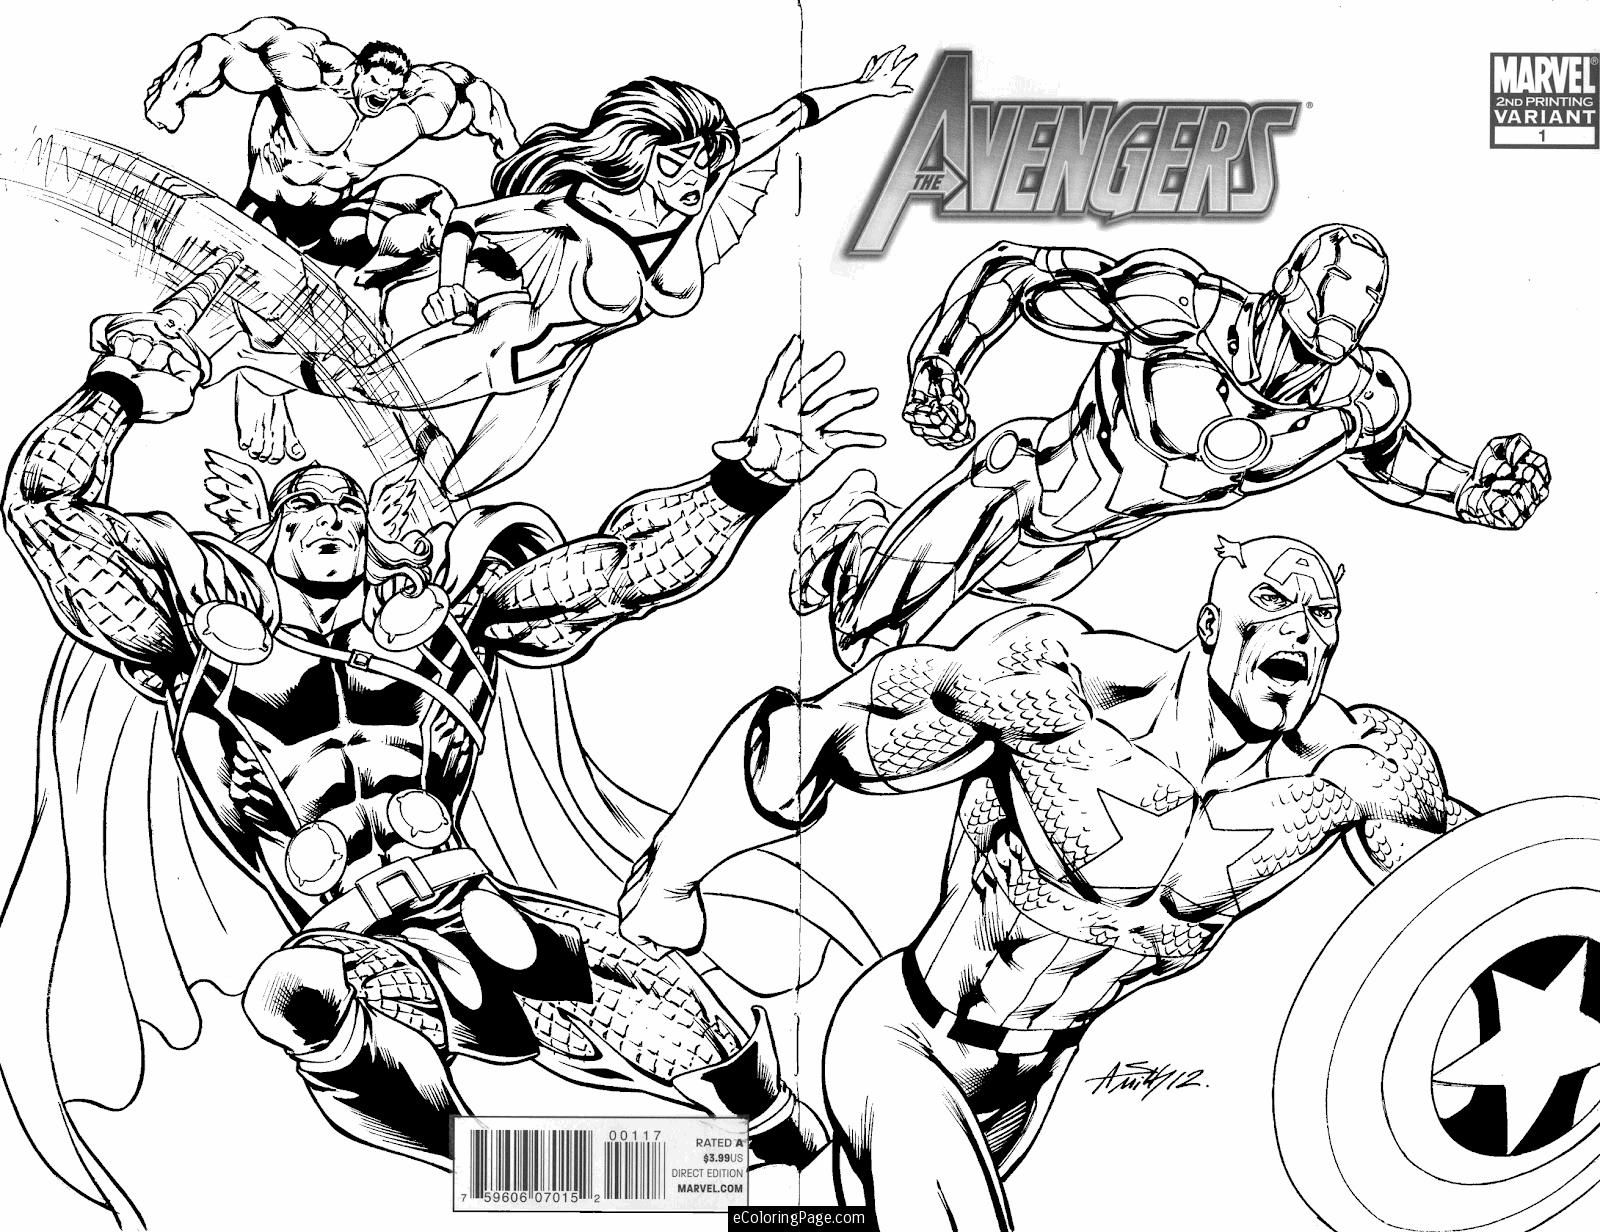 Colouring sheets to colour - All Superhero Coloring Pages Downloadmarvel Superheroes Avengers Action Coloring Page For Printable